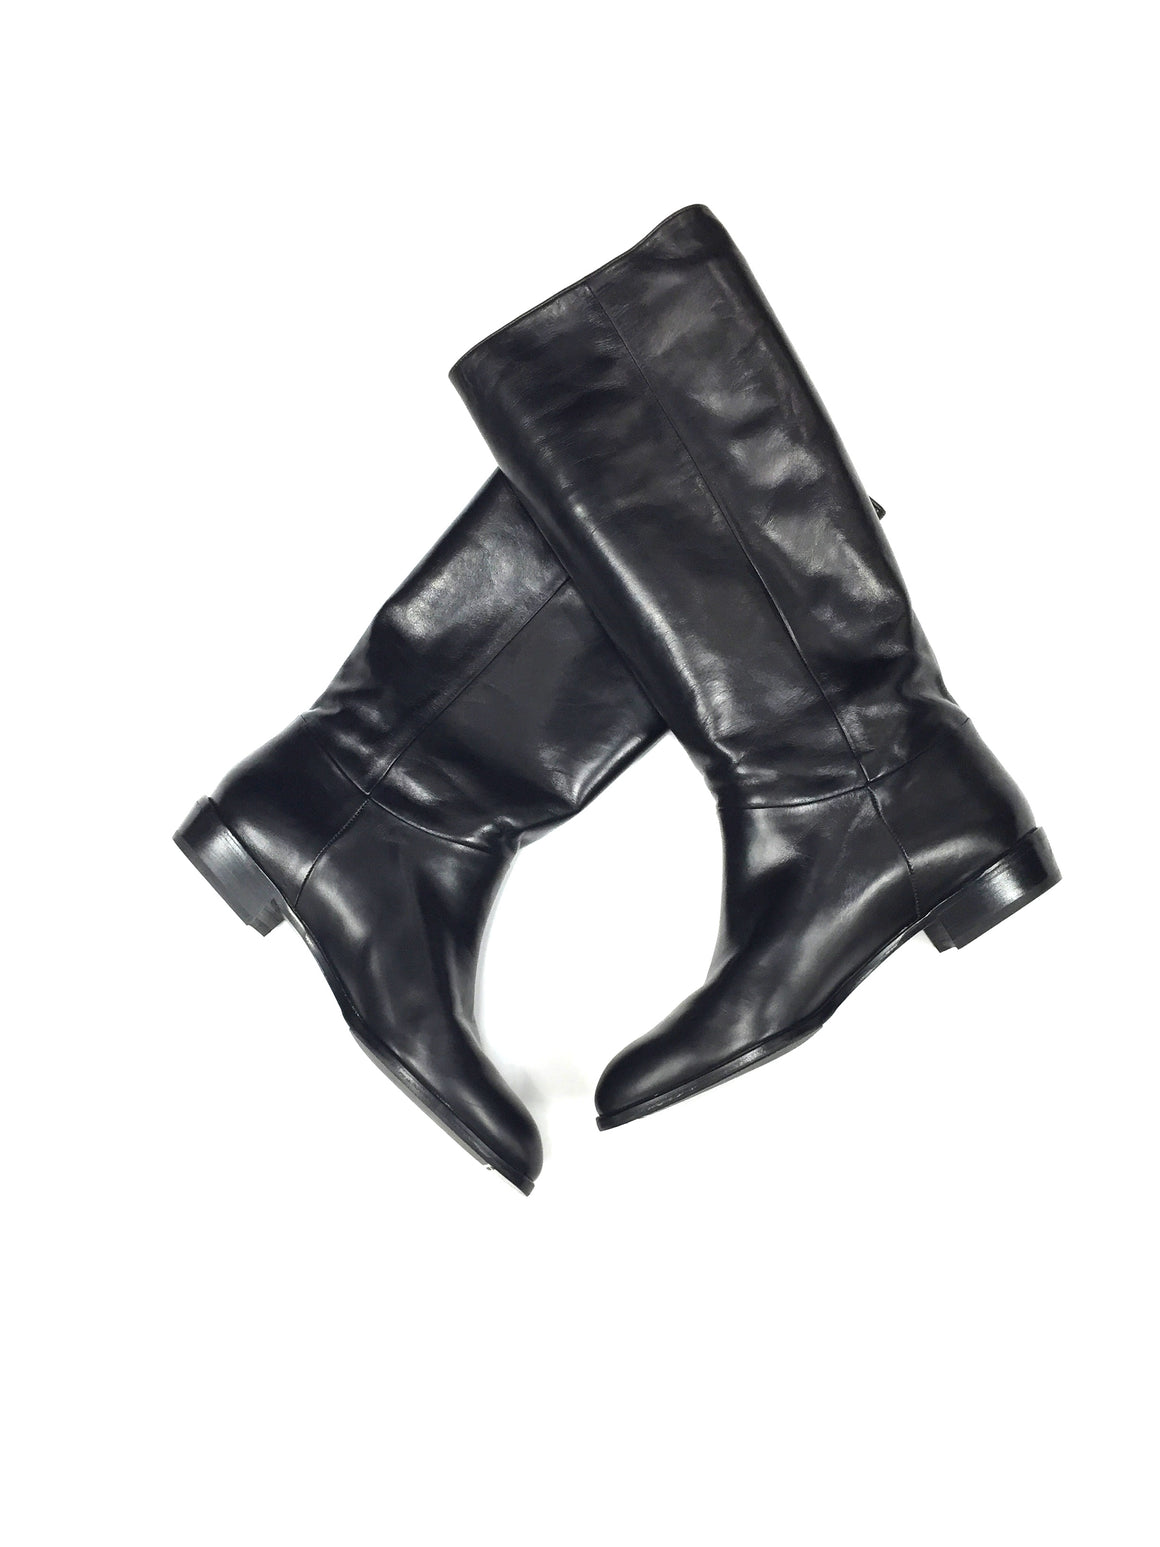 RIZZOLI Black Leather Pull-On Knee-Hi Flat Riding Boots Size: 40.5 / 10.5